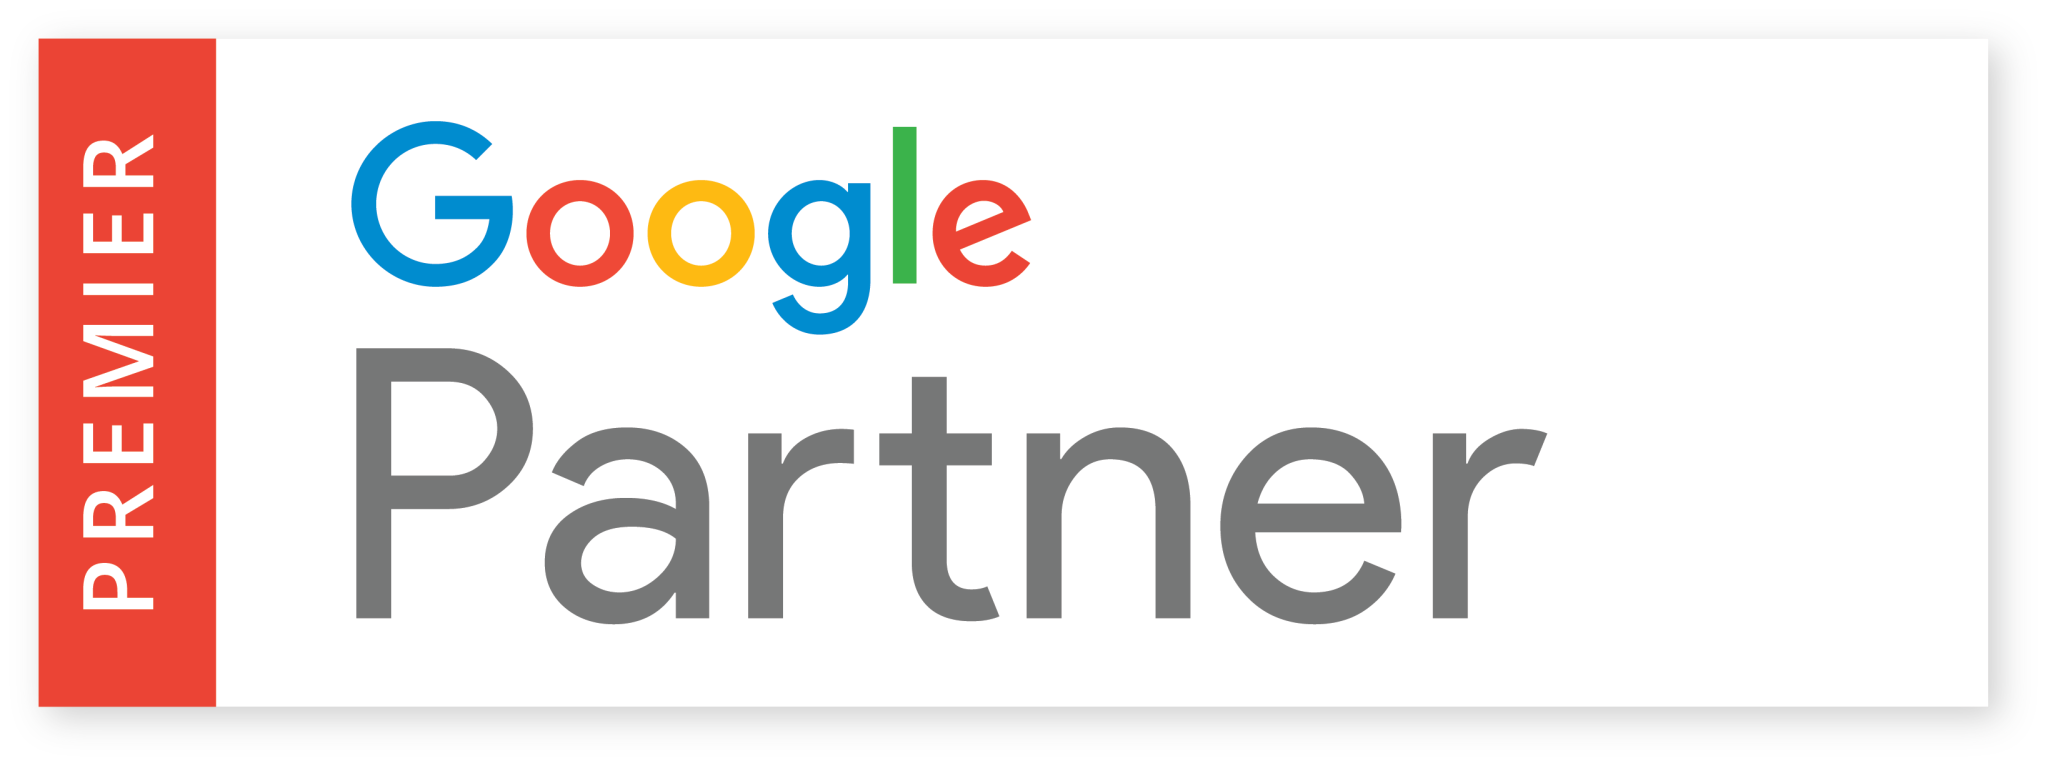 Google partner png. What it means to